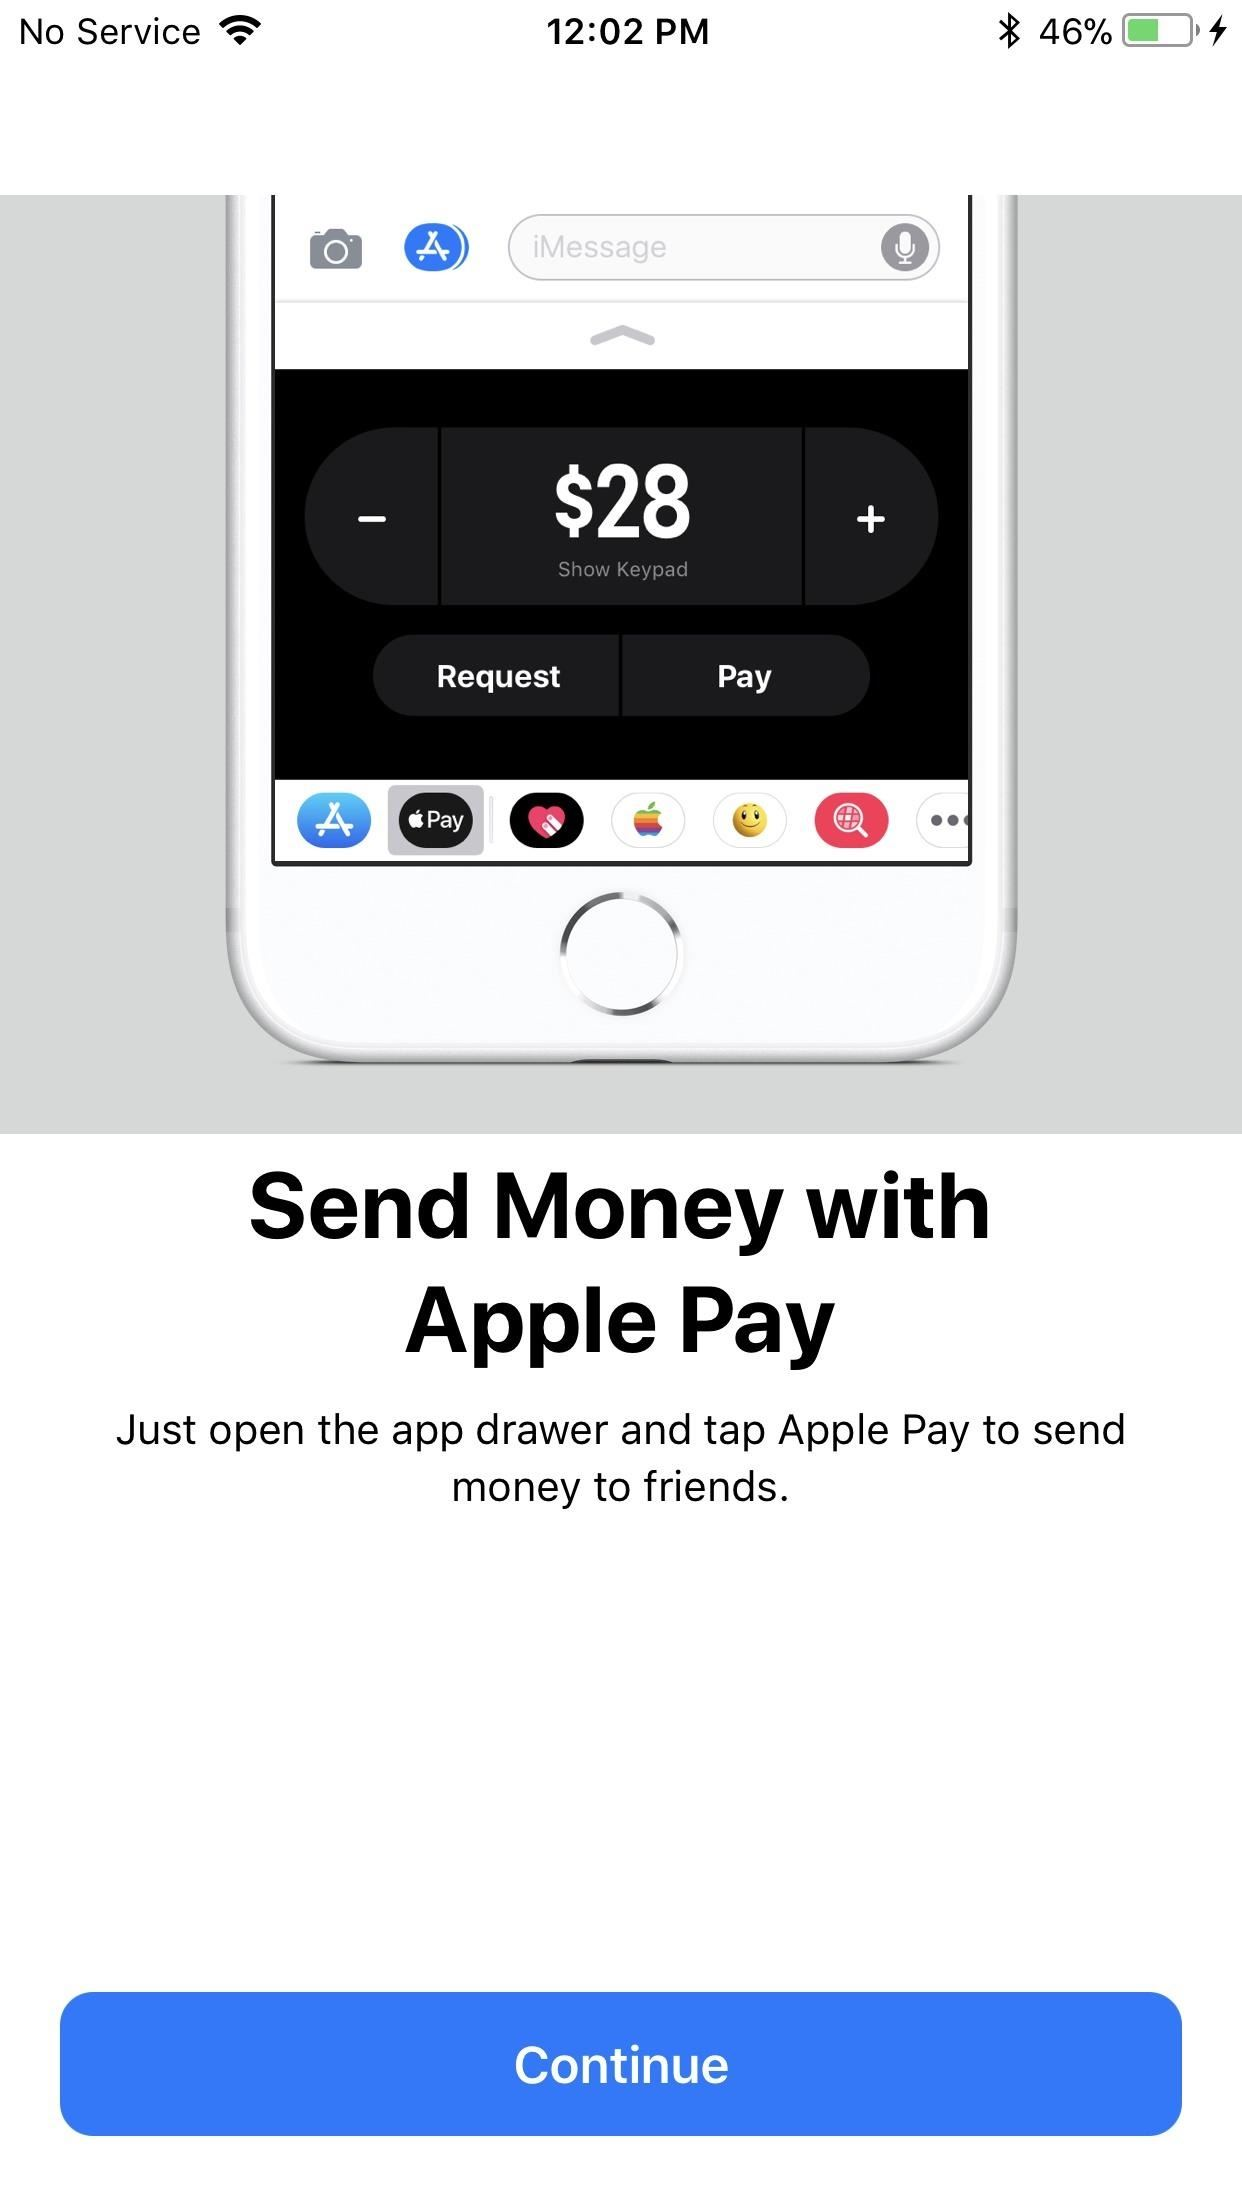 Apple Pay Cash 101: What You Need to Get Started